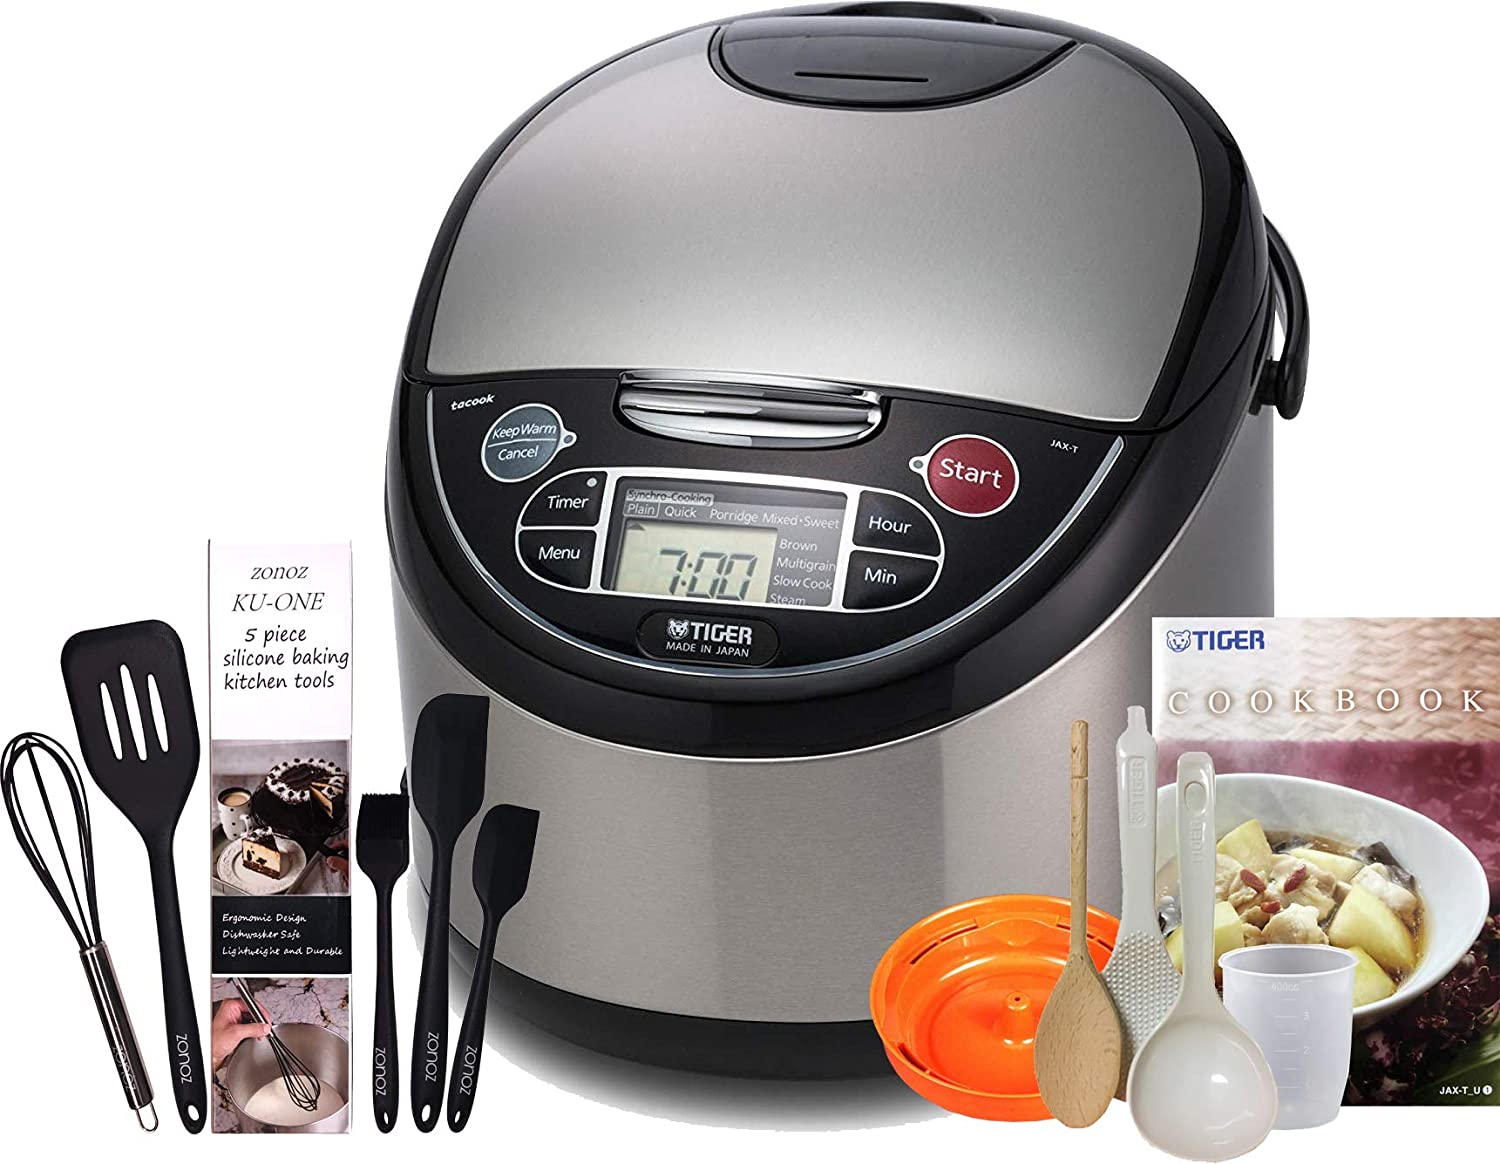 Tiger JAX-T18U-K 10 Cups Uncooked 20 Cups Cooked Micom Rice Cooker with Food Steamer Slow Cooker, Stainless Steel Black Zonoz 8-Inch Rice Paddle Wooden Stirring Spoon Bundle